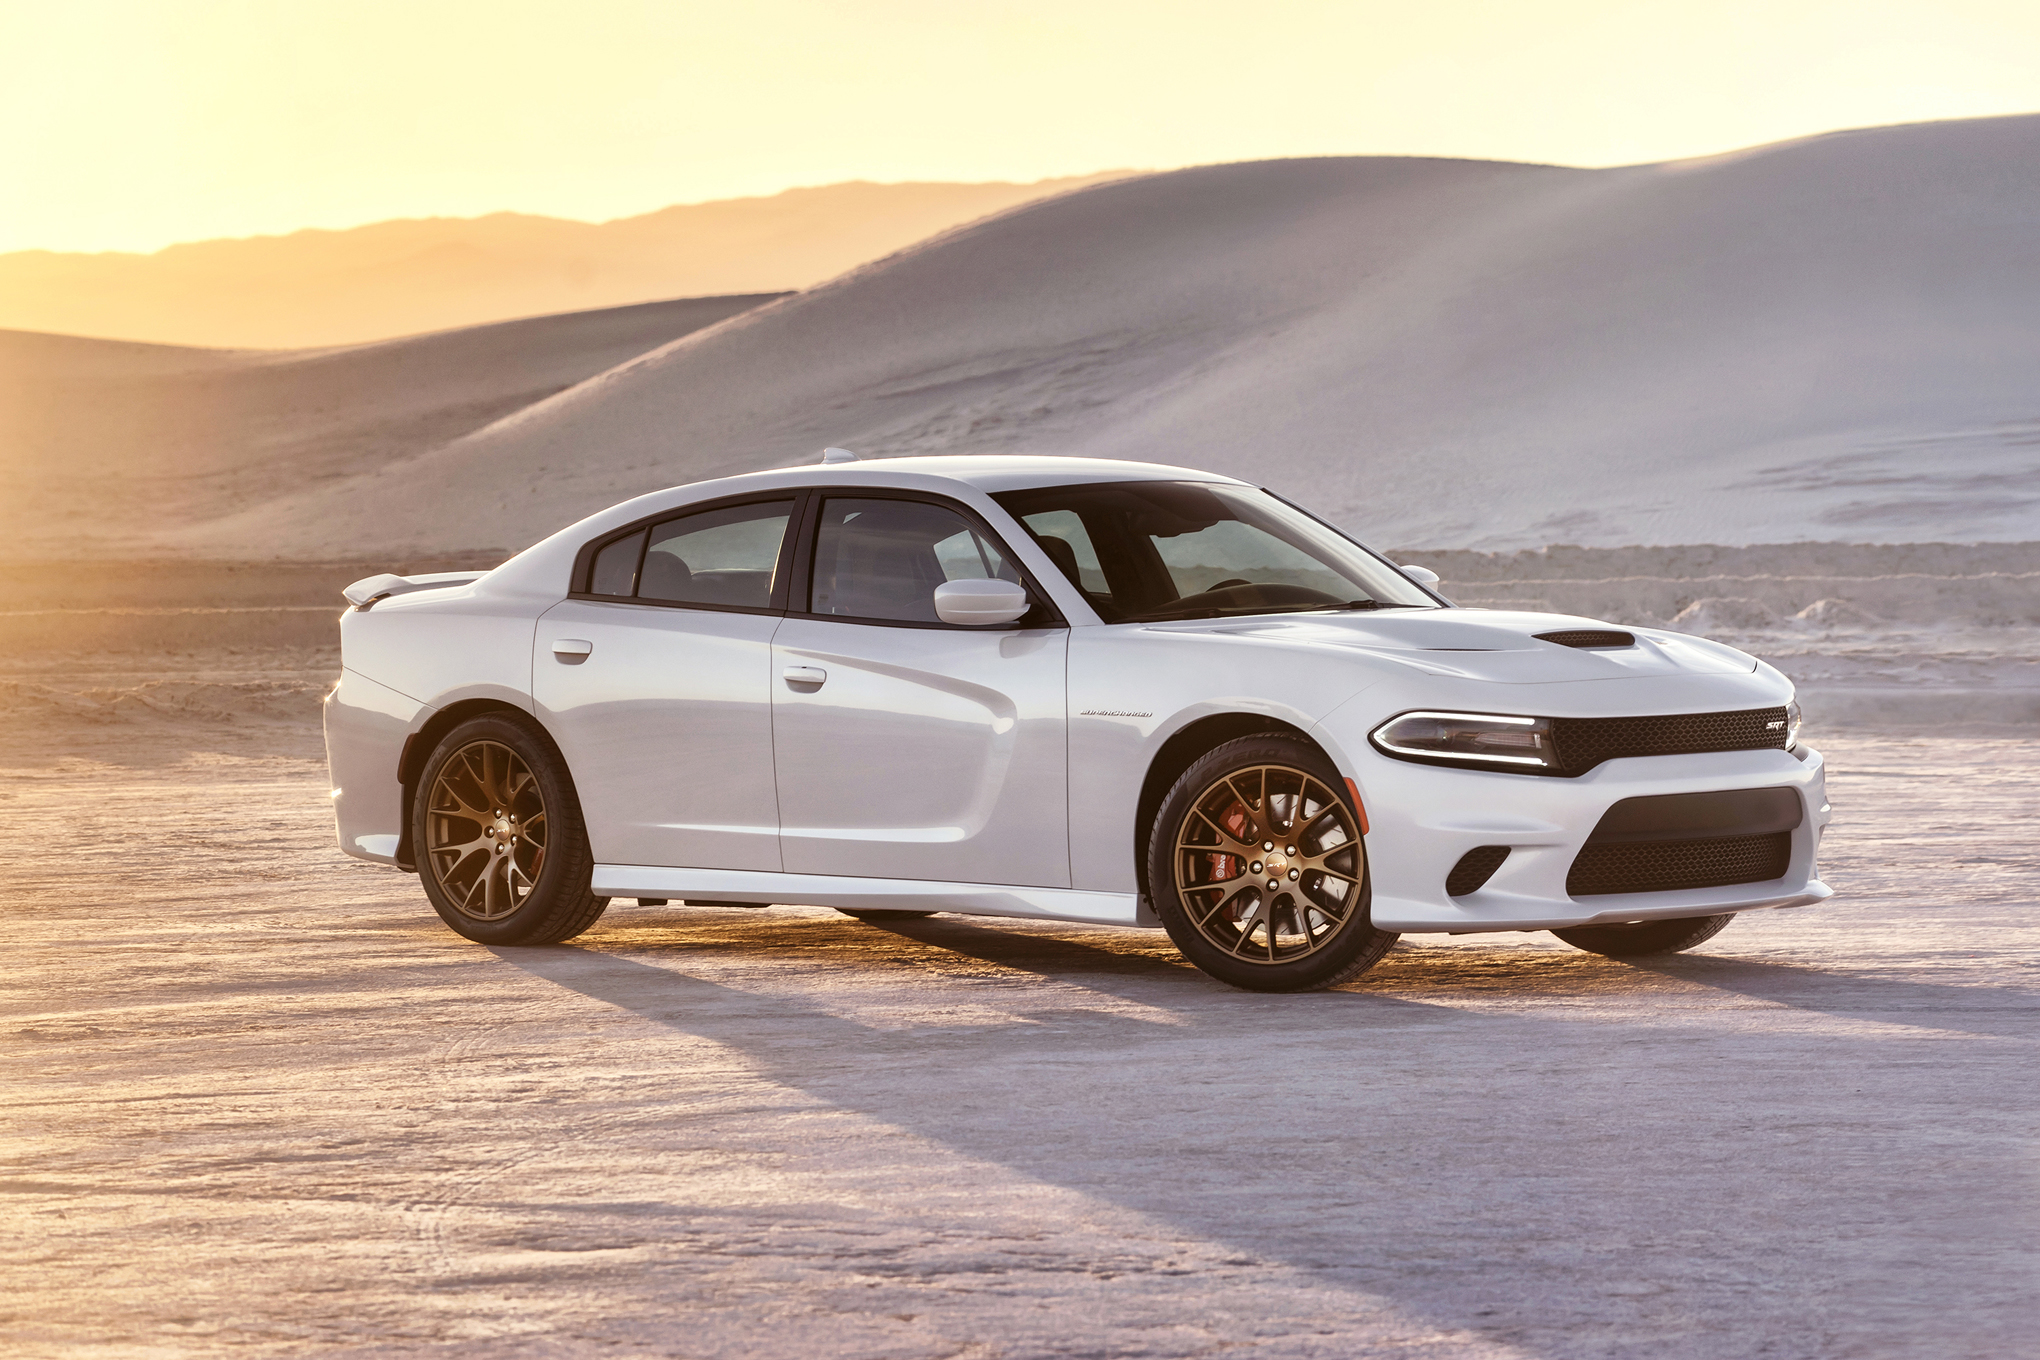 2015 Dodge Charger #10